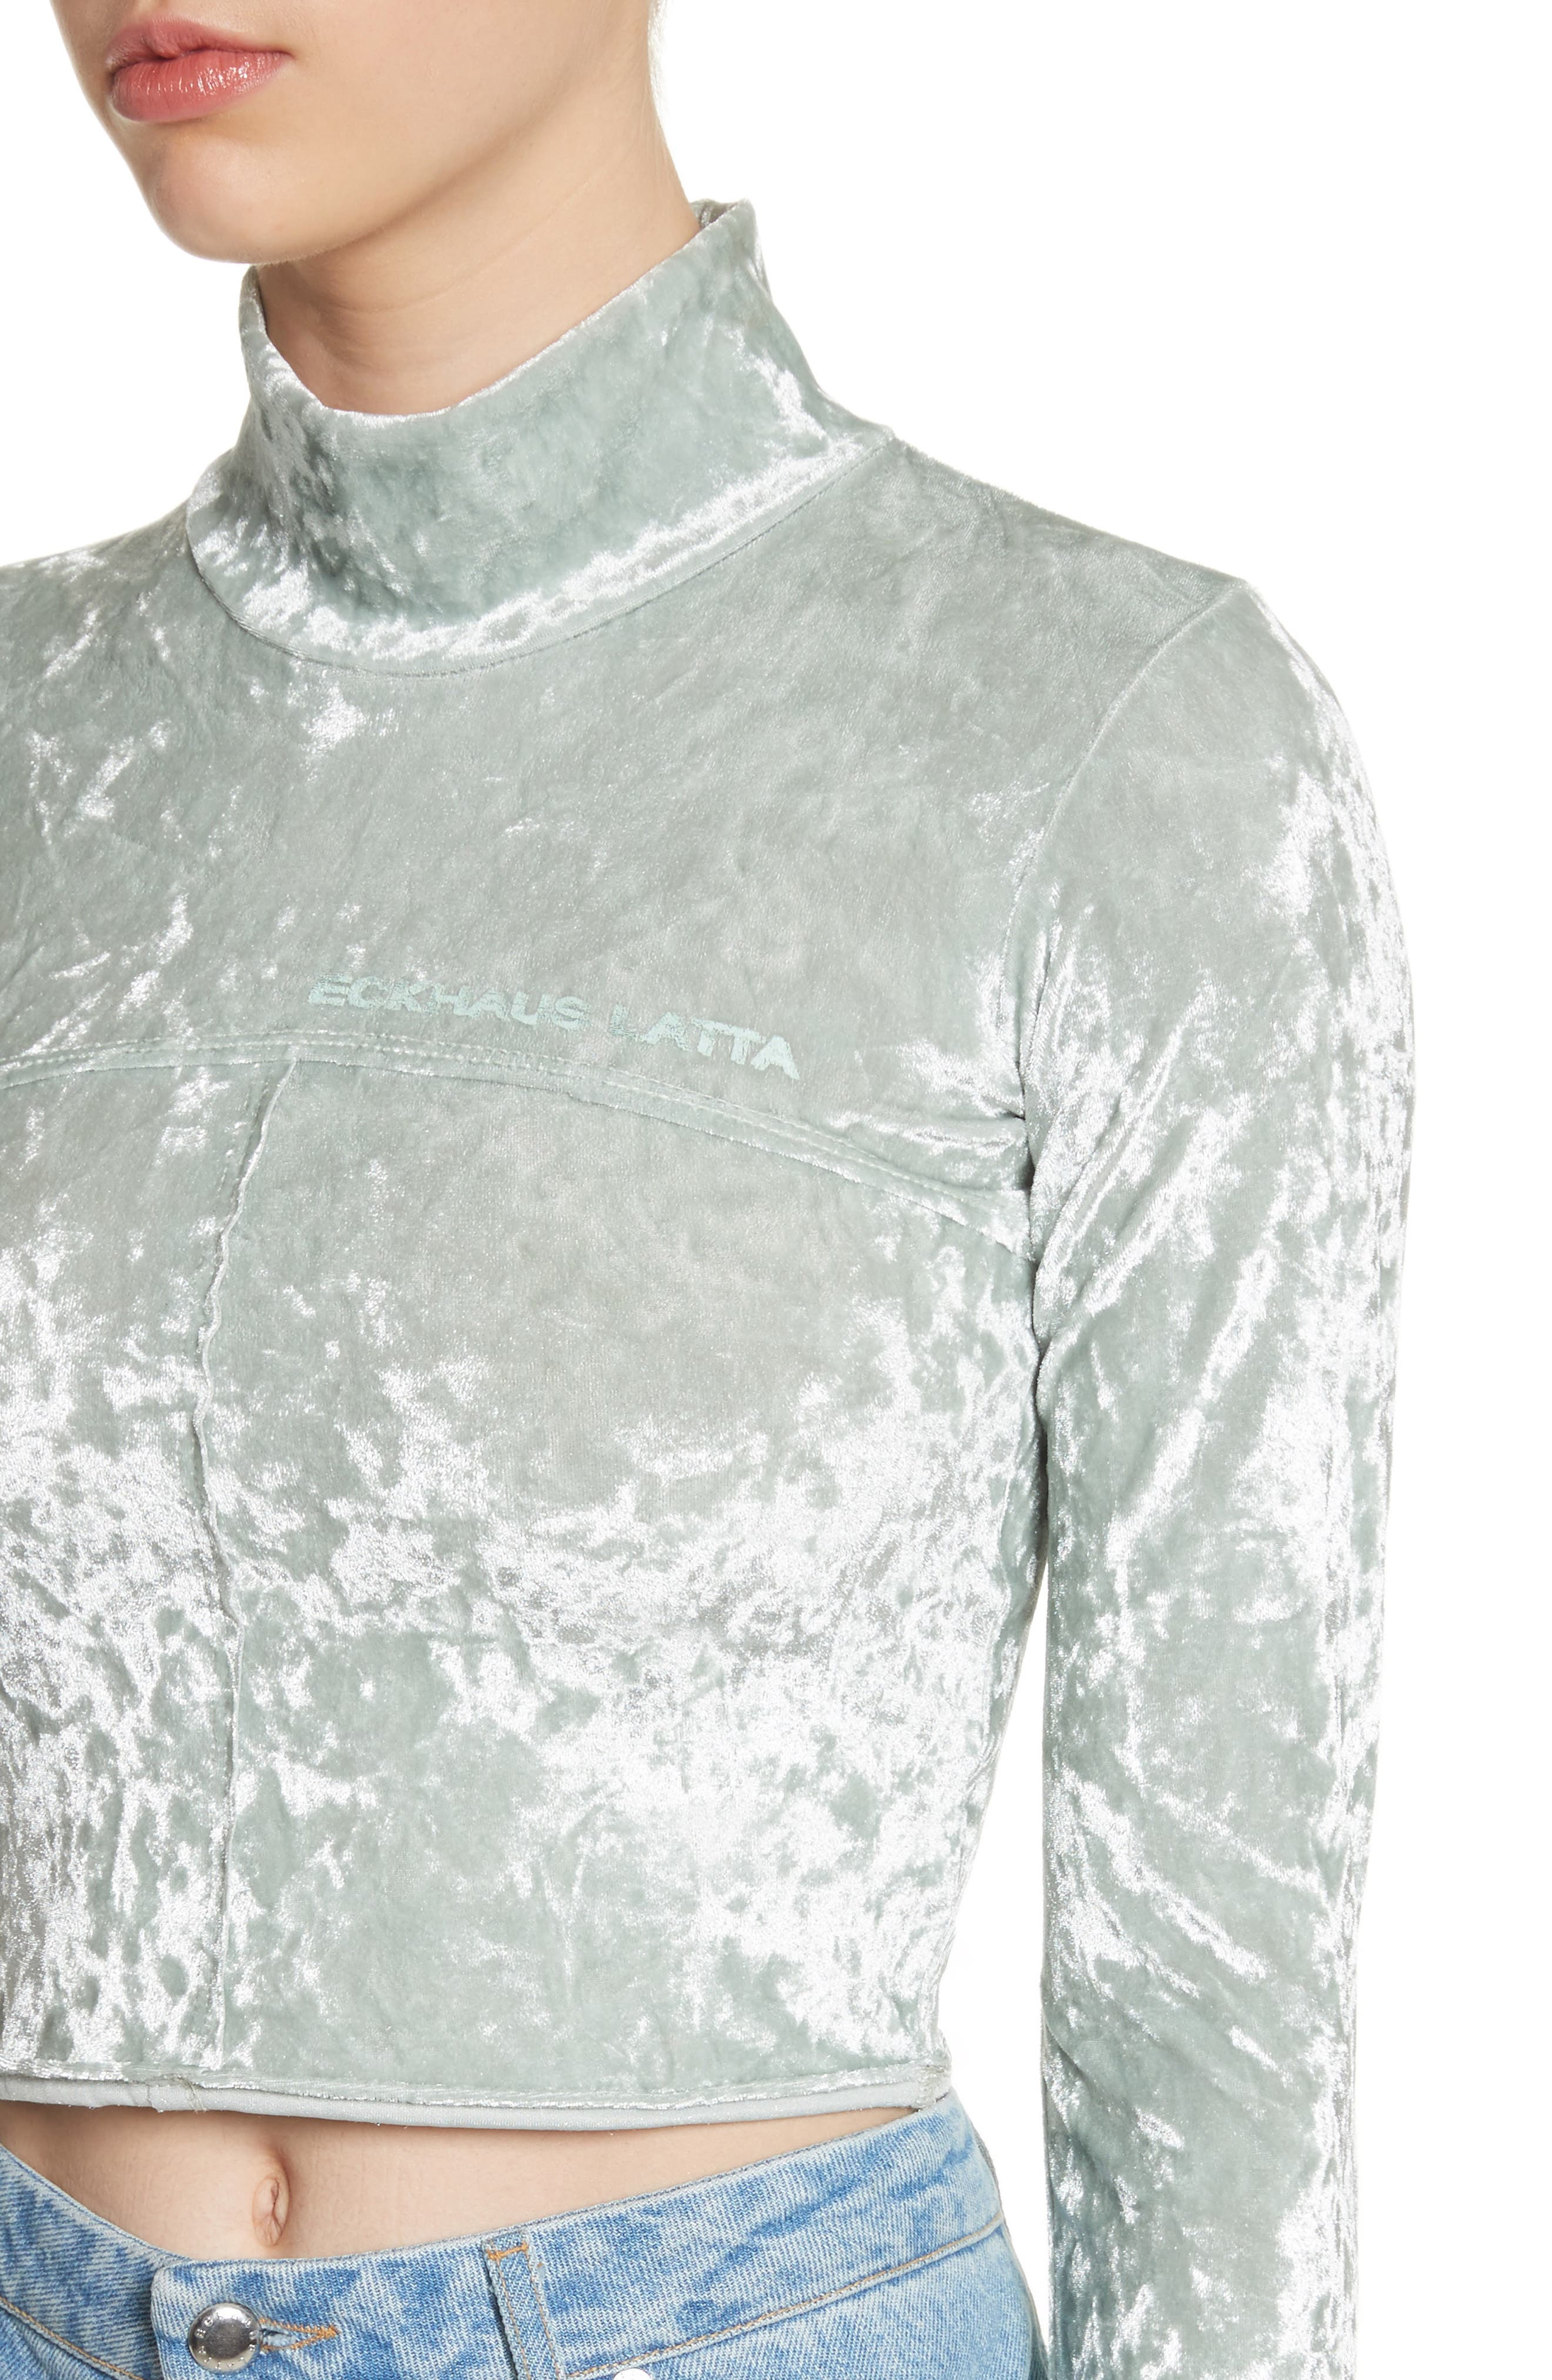 Lapped Baby Turtleneck,                             Alternate thumbnail 4, color,                             Ice